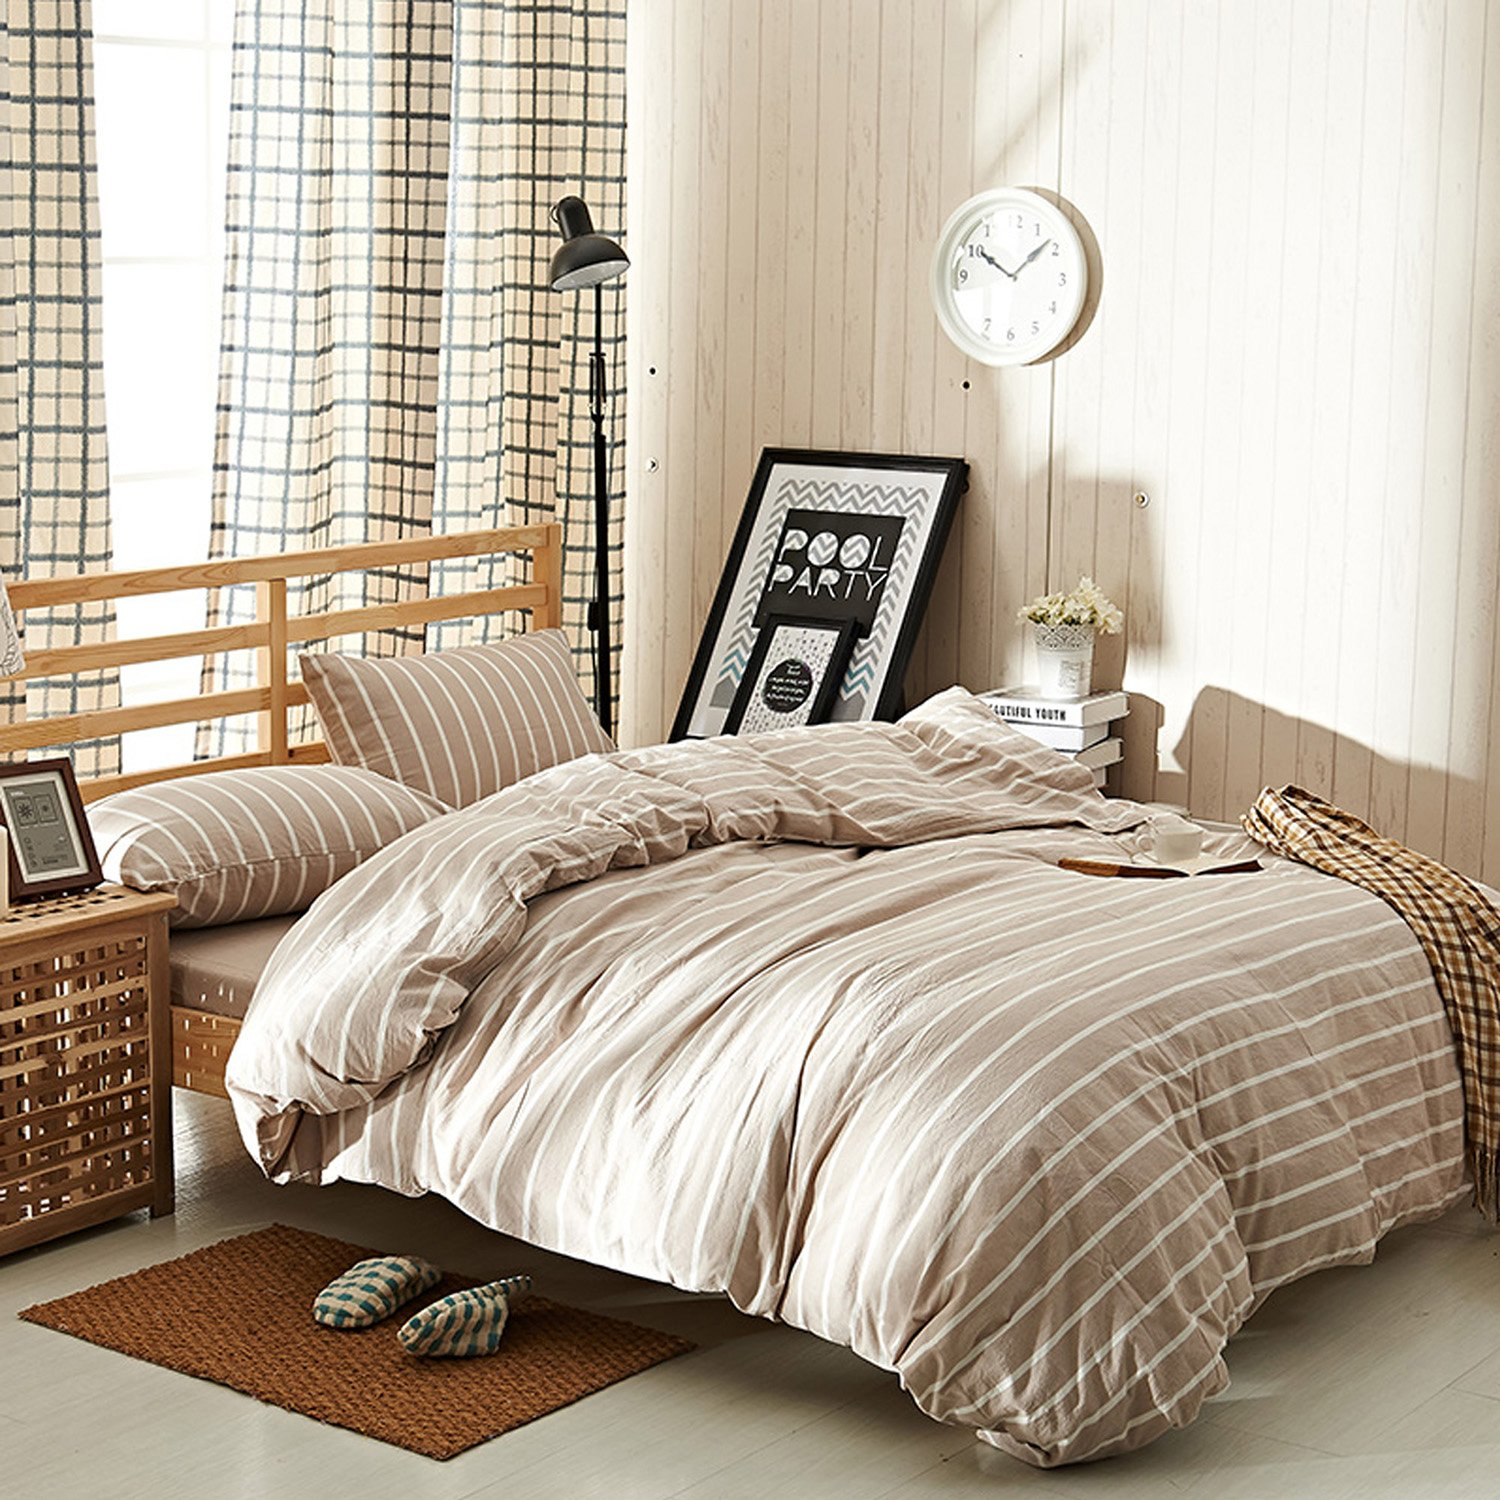 karever 100% Cotton Duvet Cover Set Tan Stripes Pattern Soft Queen Size 3 Piece Nautical Rugby Stripe Bedding Sets King Size With Zipper Closure Corner Ties